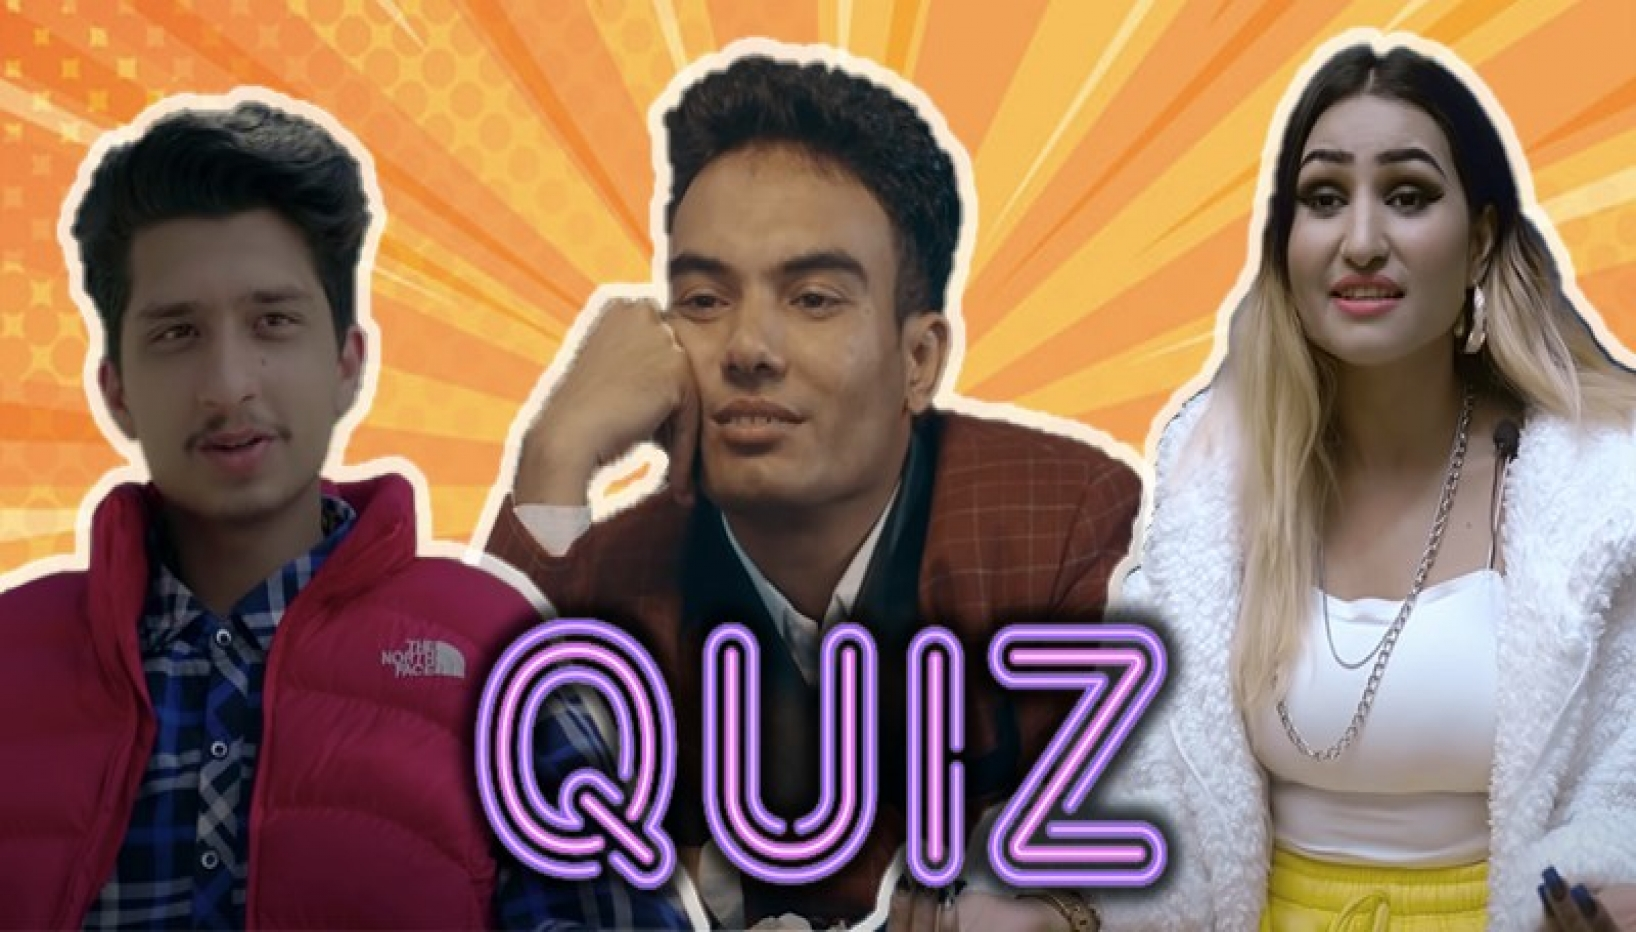 Score More Than 7 On This Blind Date Quiz Or C-Lu Will Show Up At Your House On A Dozer